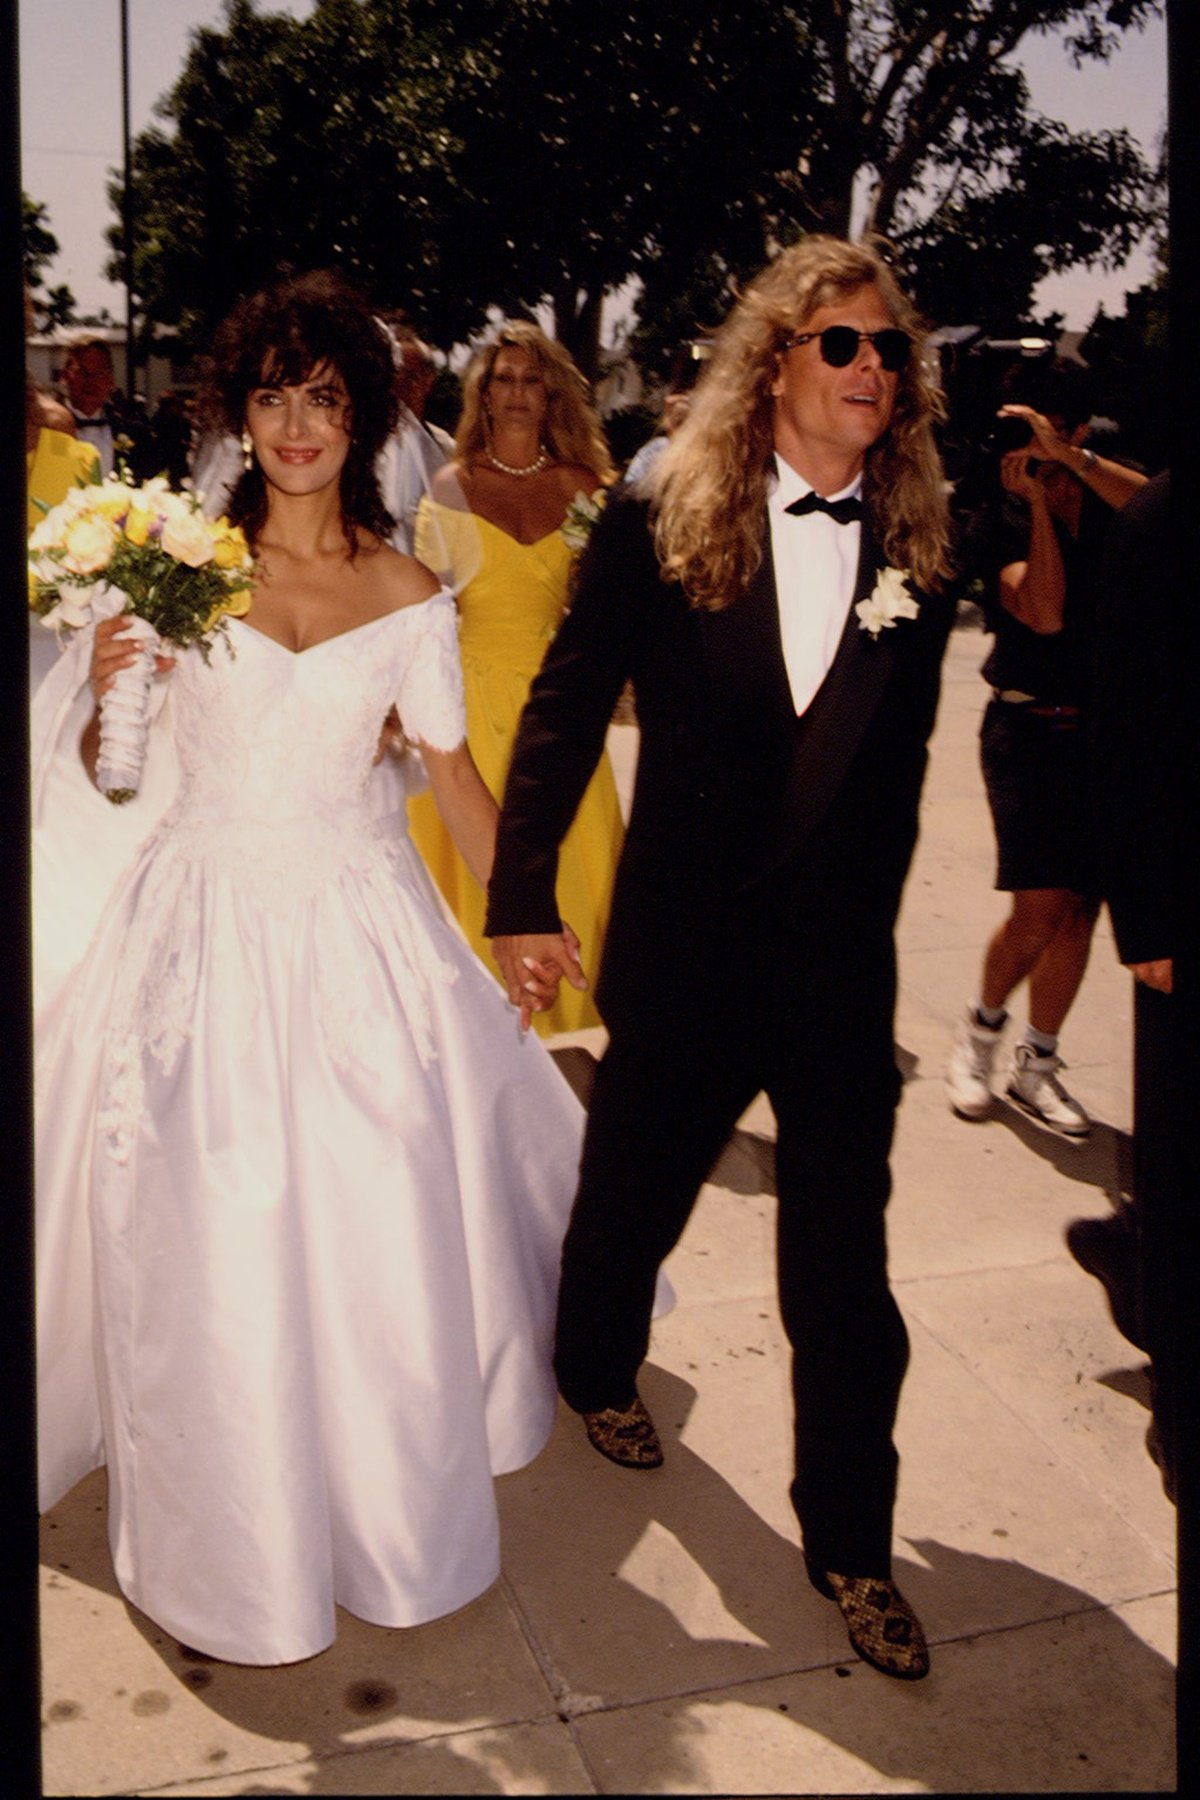 Michael-Lamper-and-Marina-Sirtis-Married-in-1992